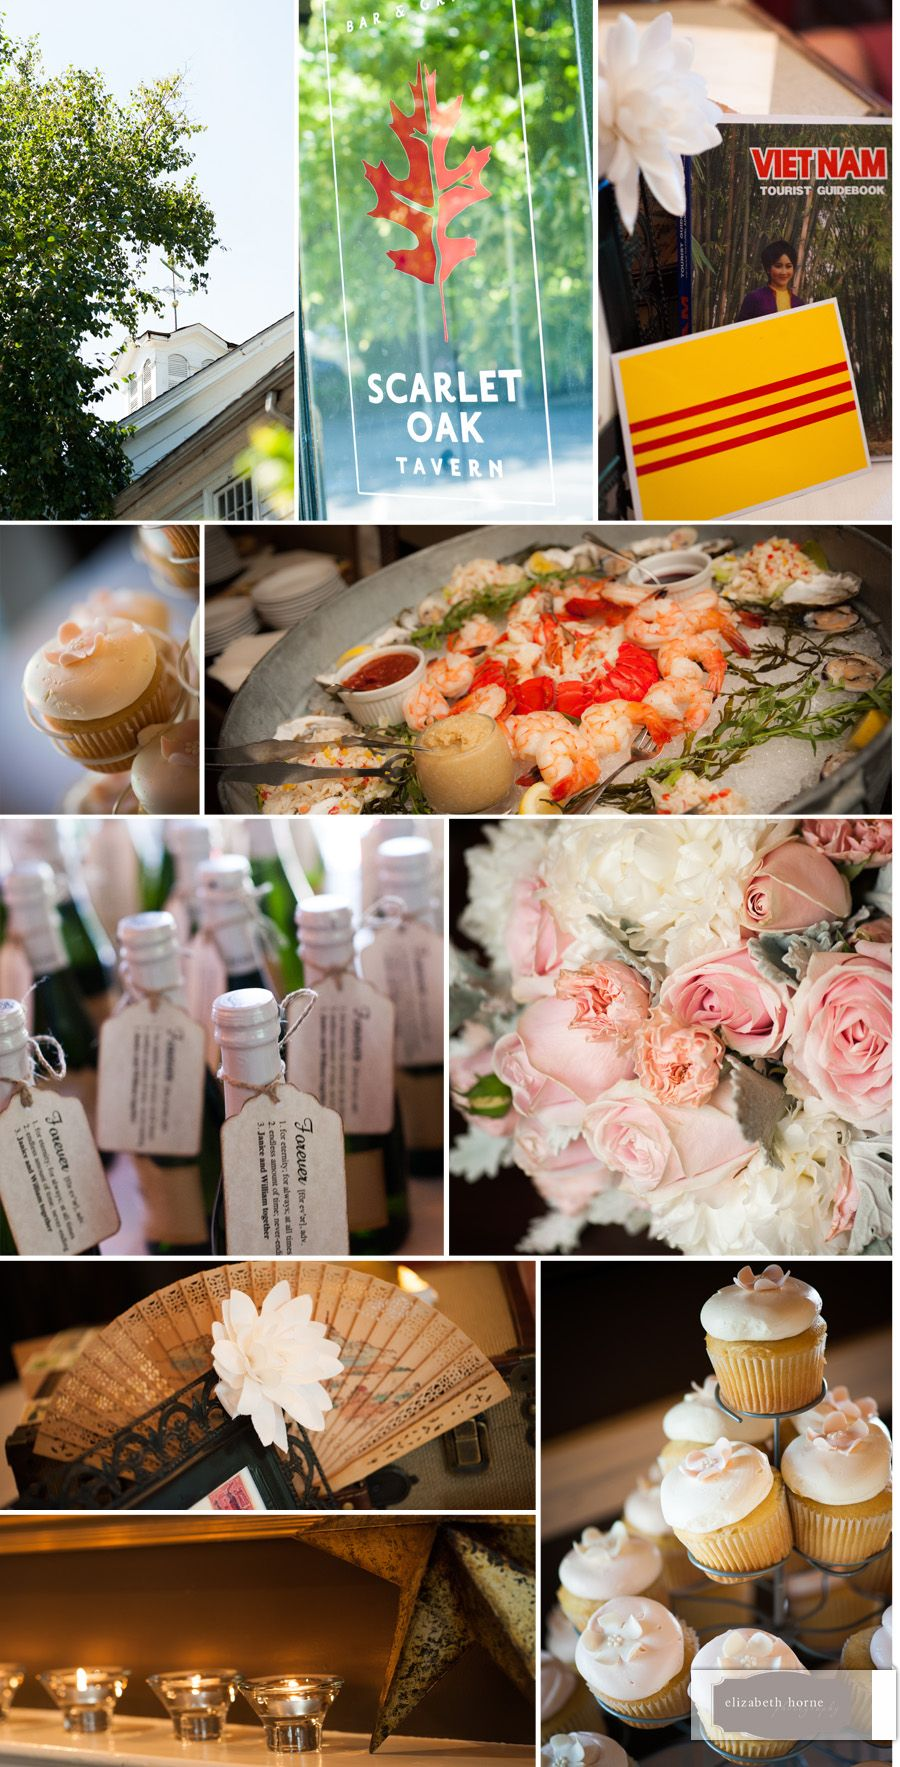 Many Special Touches At This Small Wedding Reception Hosted Scarlet Oak Tavern